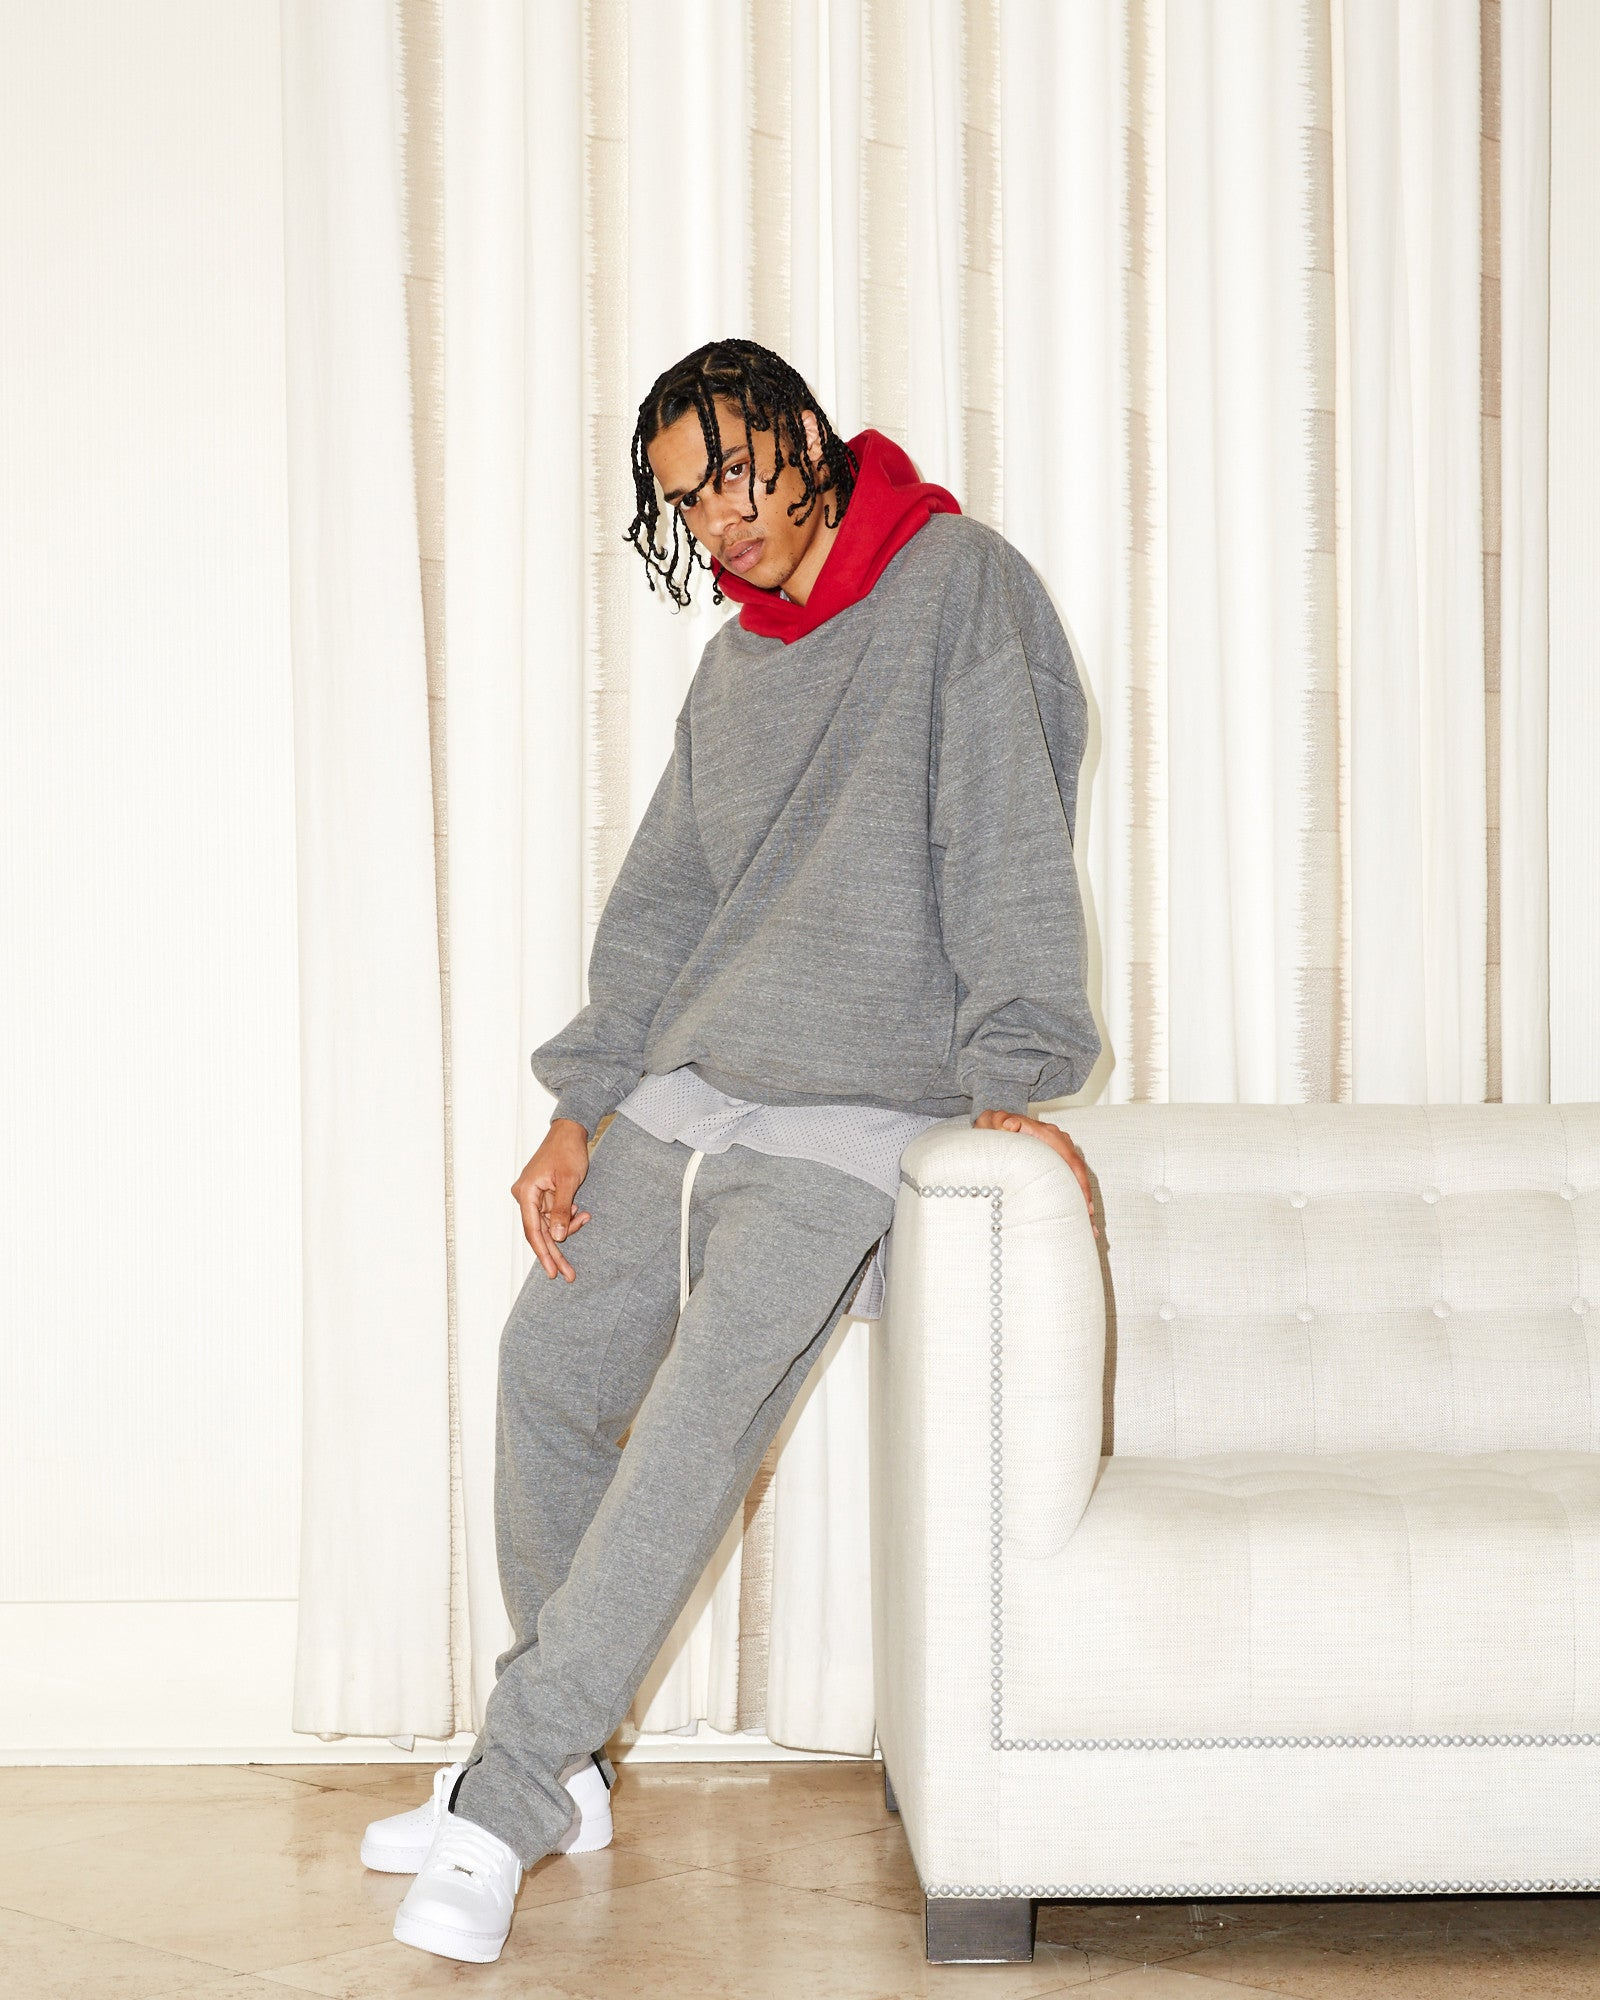 Fear Of God Fifth Collection Unknwn